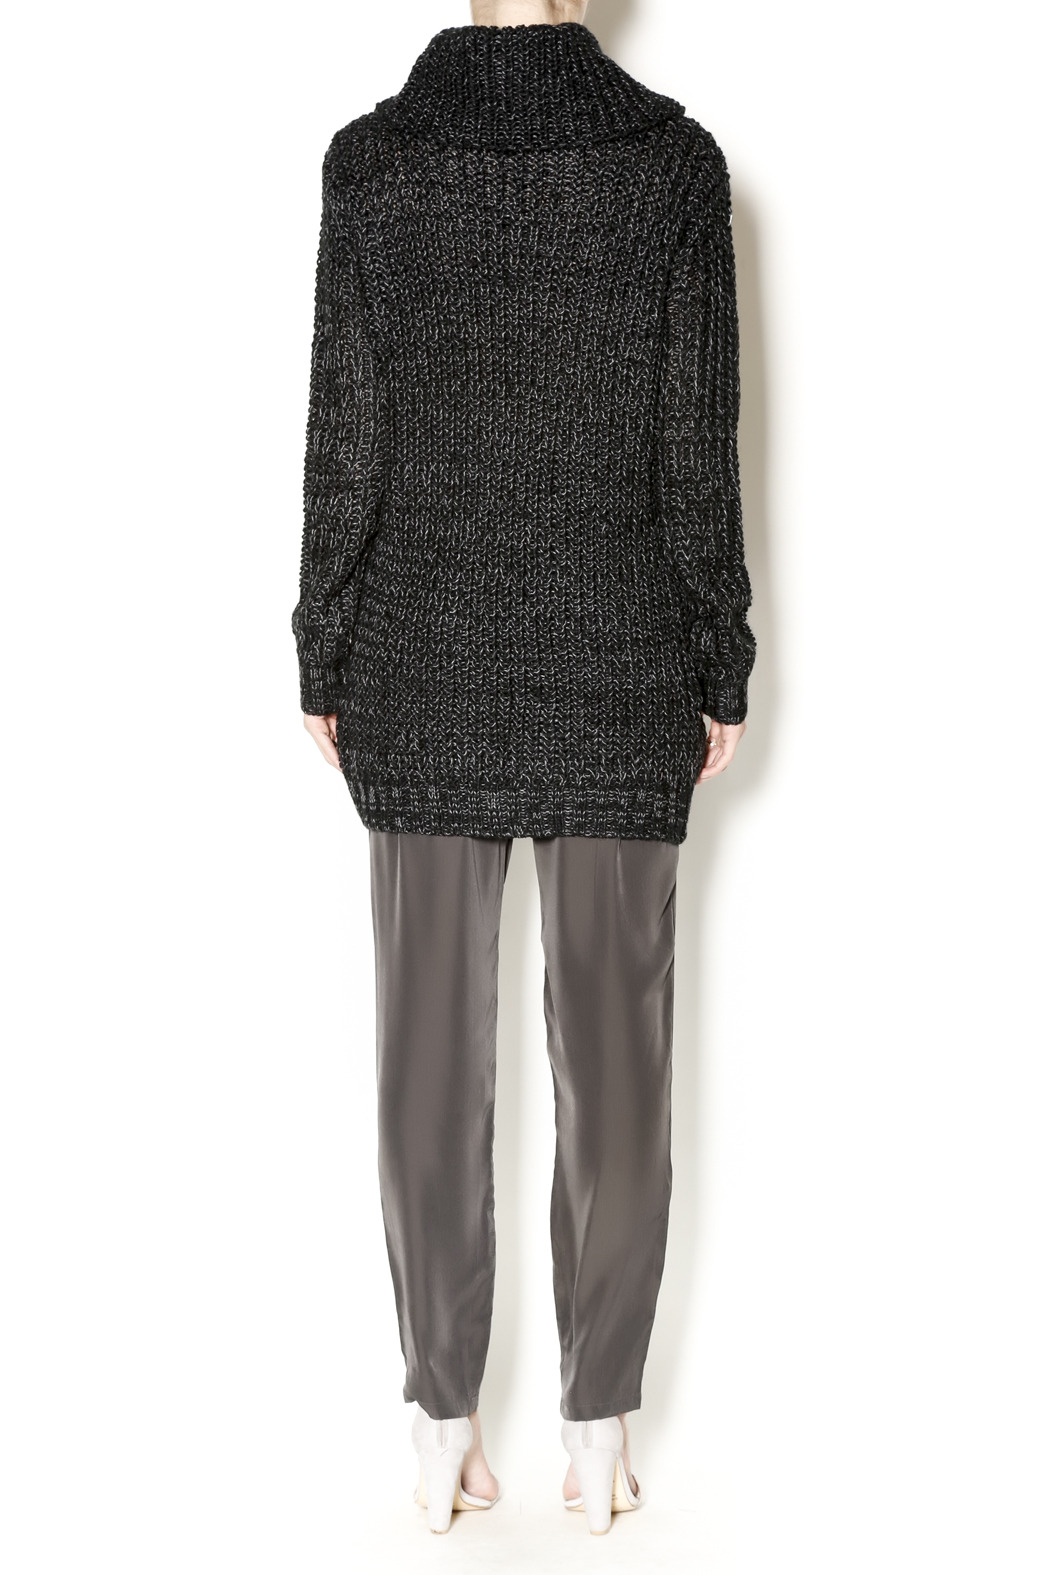 Cecico Long Knit Sweater - Side Cropped Image